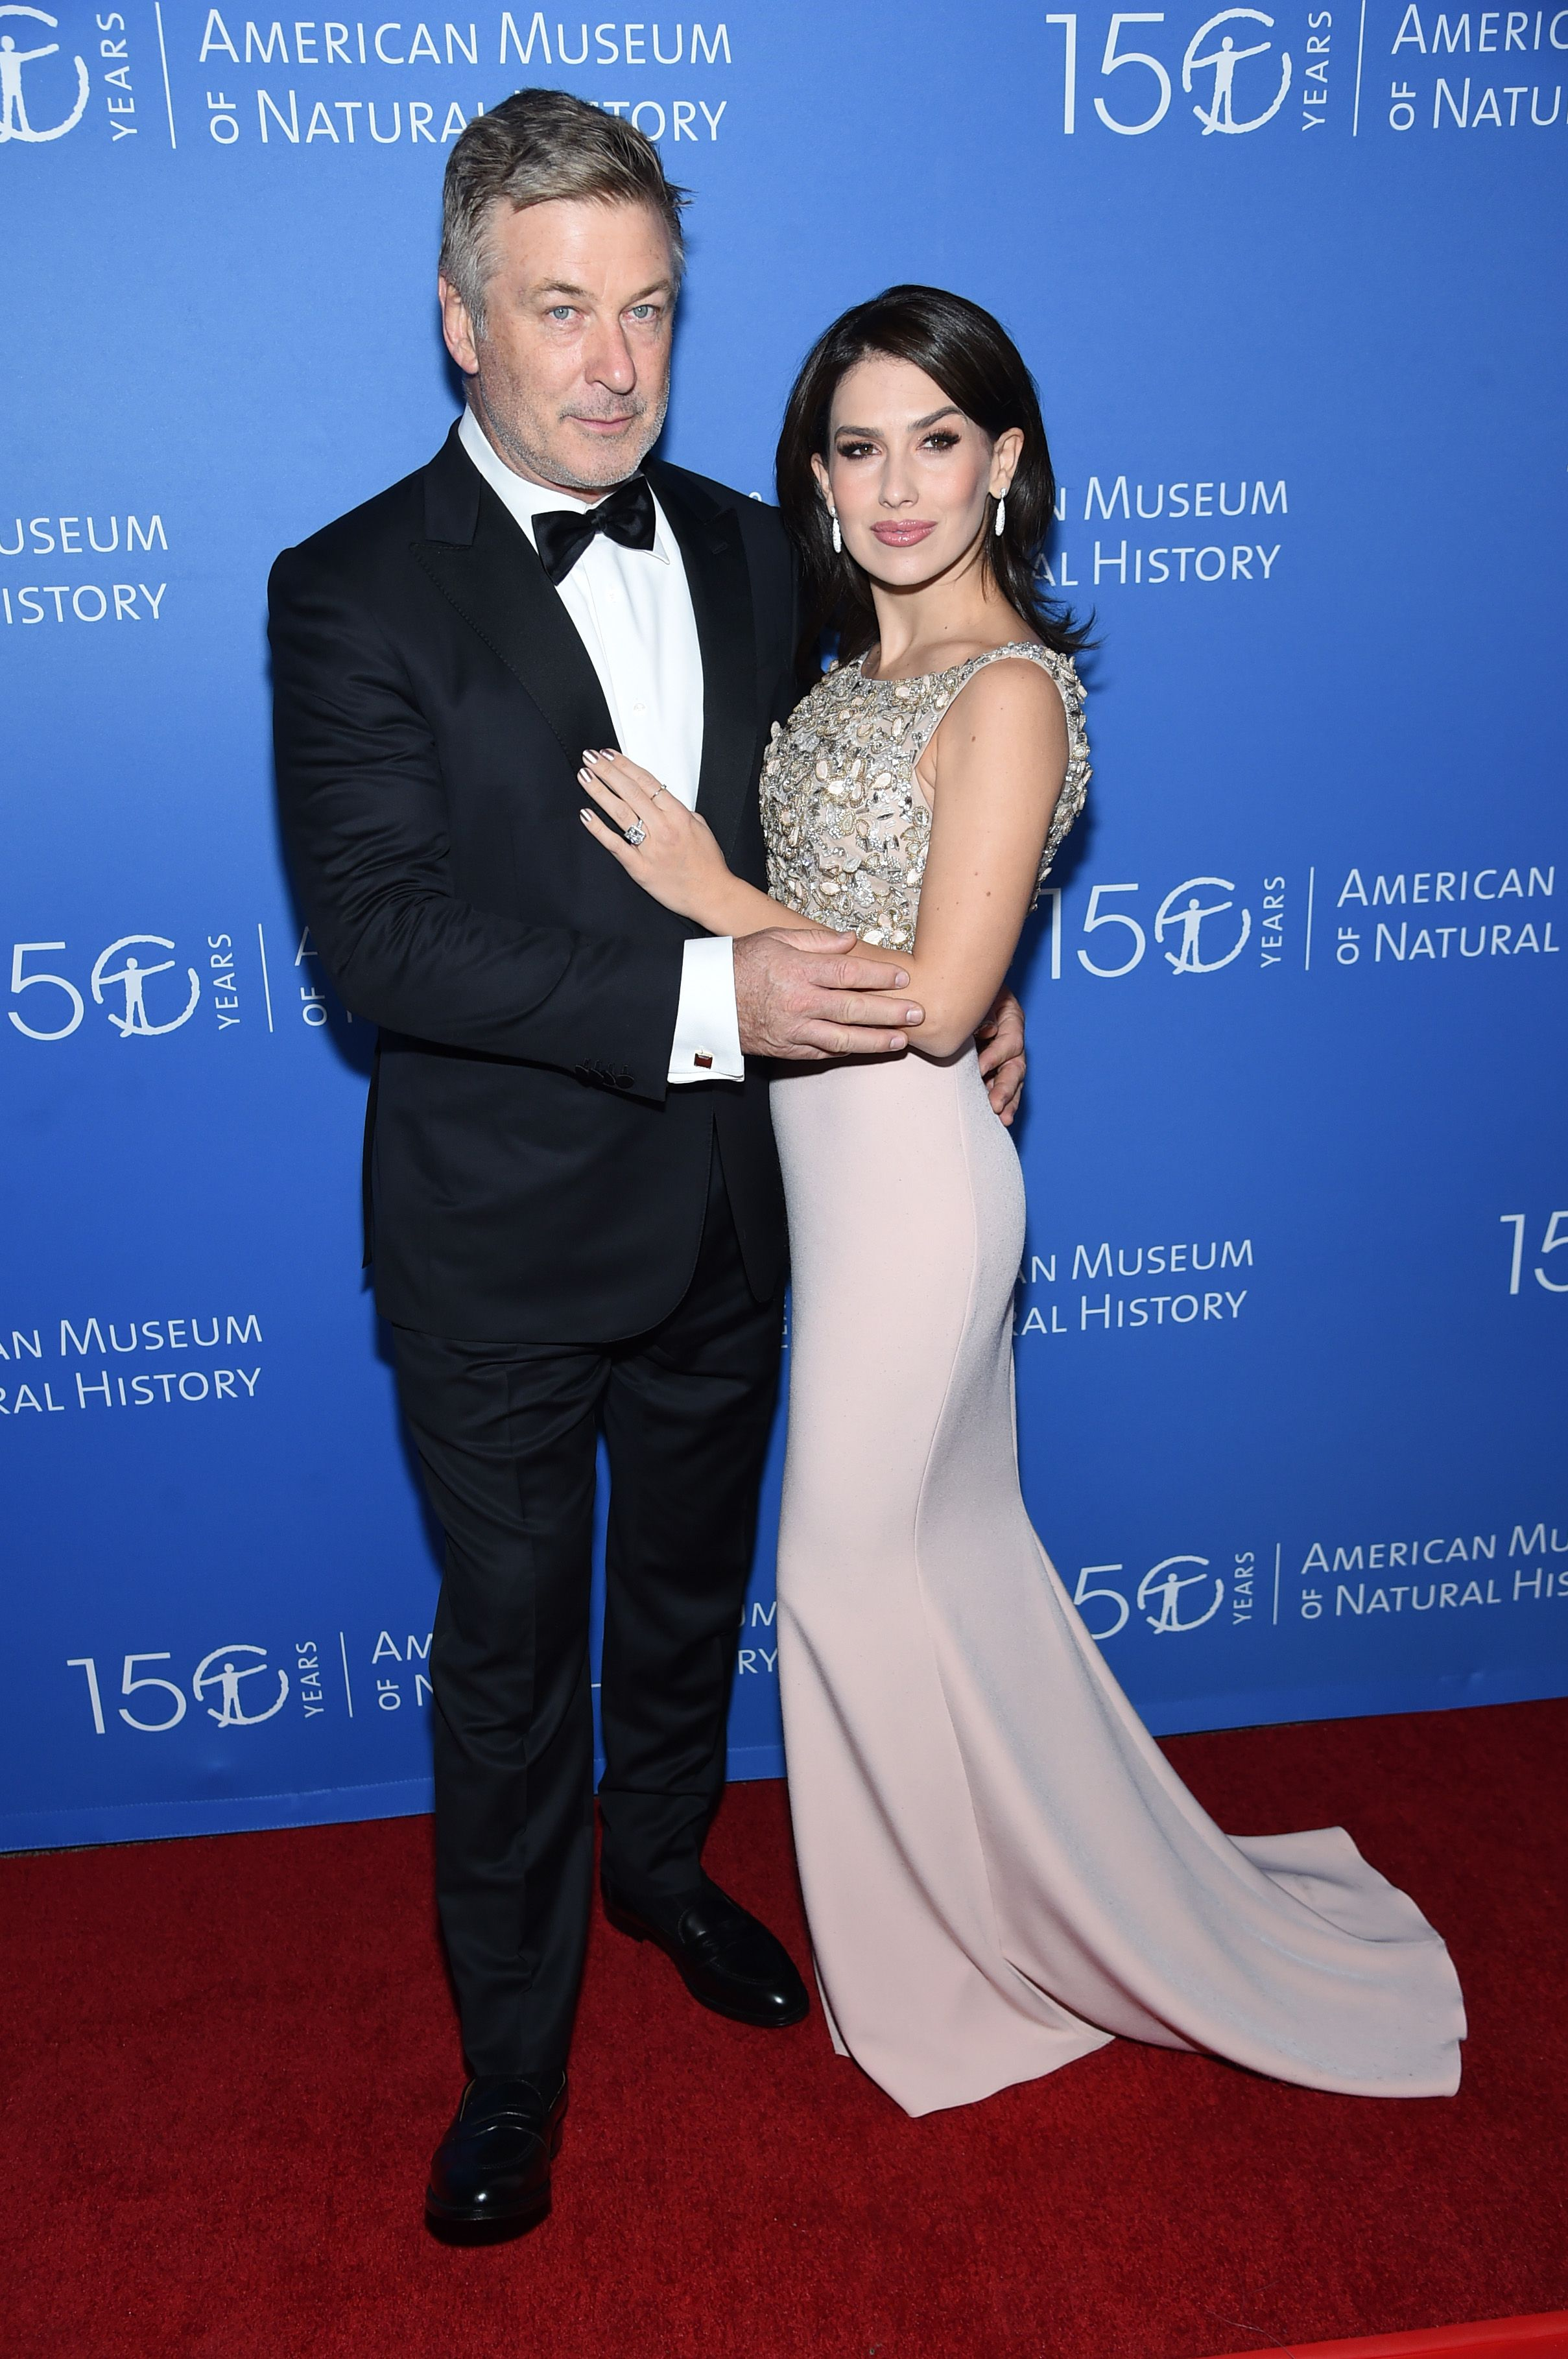 Alec and Hilaria Baldwin during the American Museum Of Natural History Gala on November 21, 2019, in New York City. | Source: Getty Images